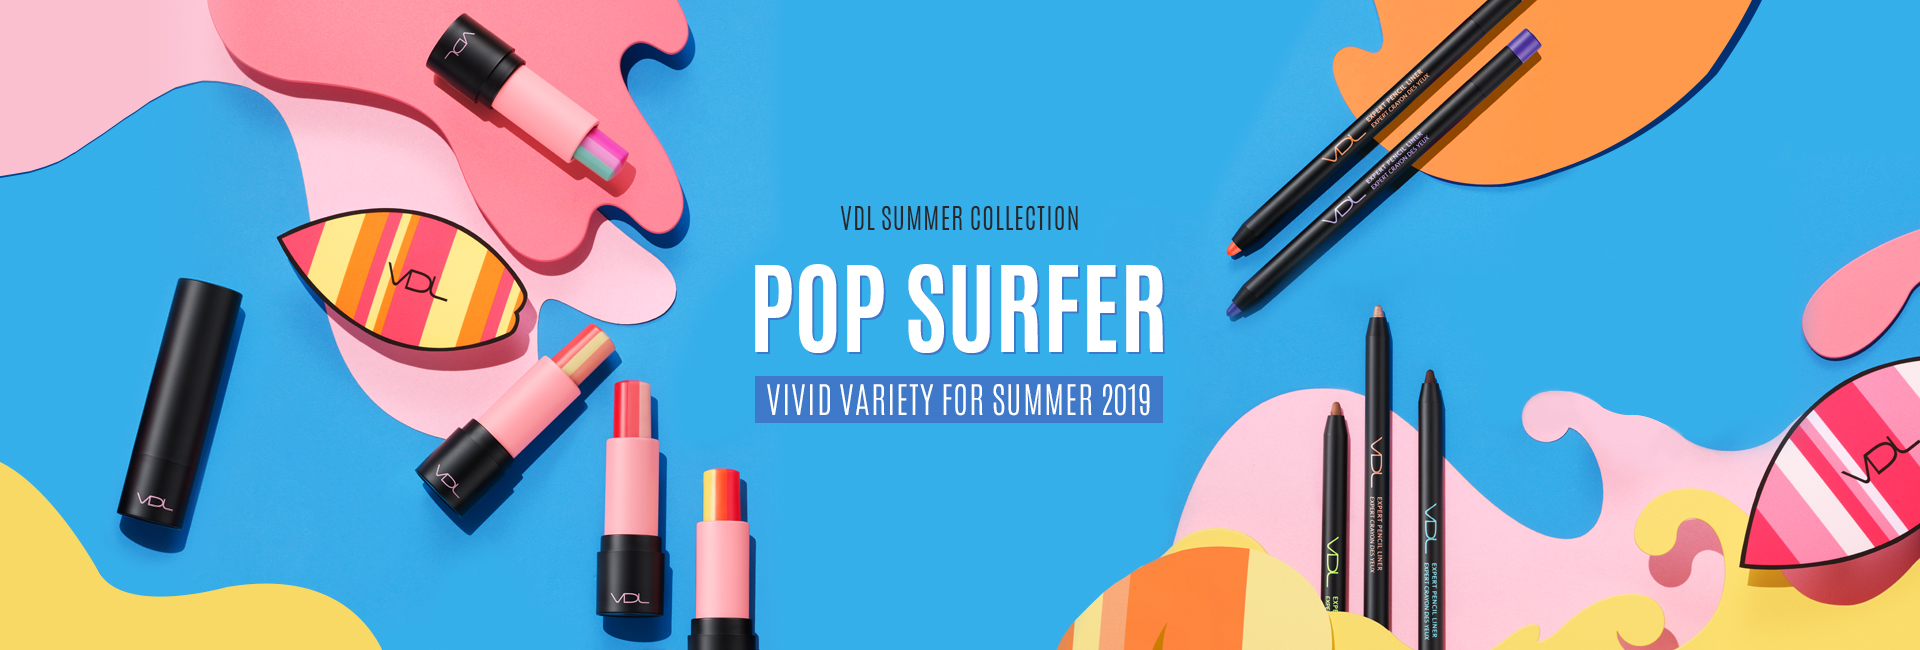 2019 VDL SUMMER COLLECTION